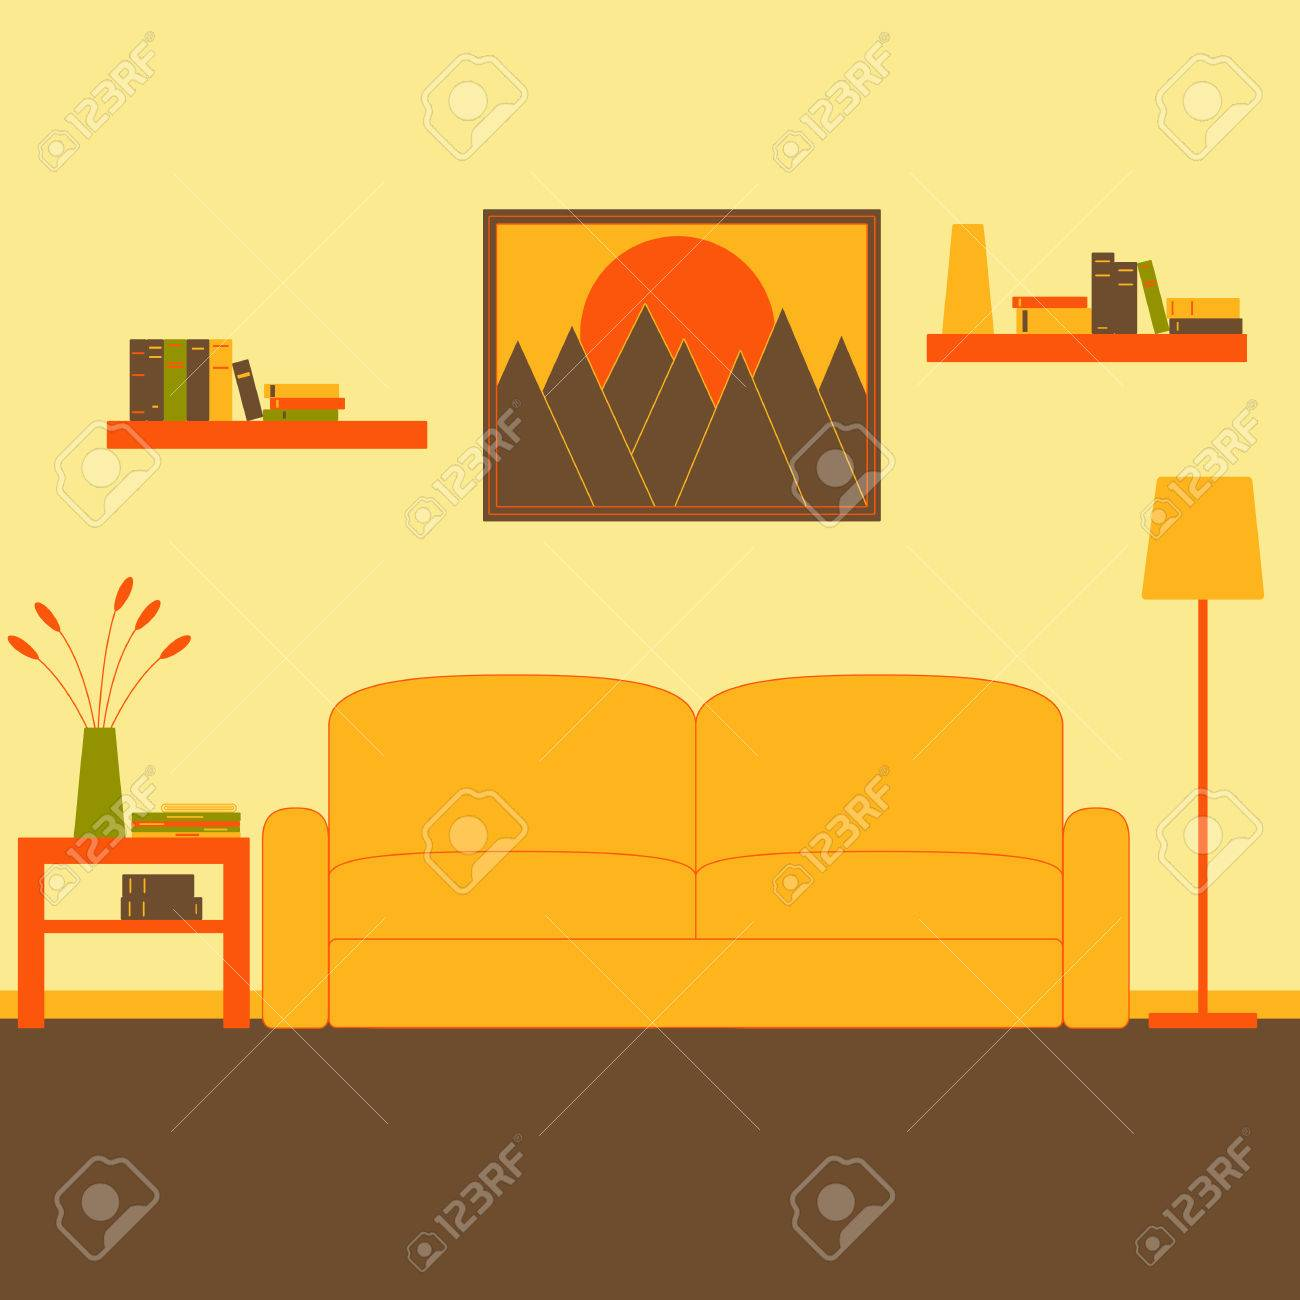 Living Room Interior With Sofa, Floor Lamp, Coffee Table With Magazines,  Newspaper,